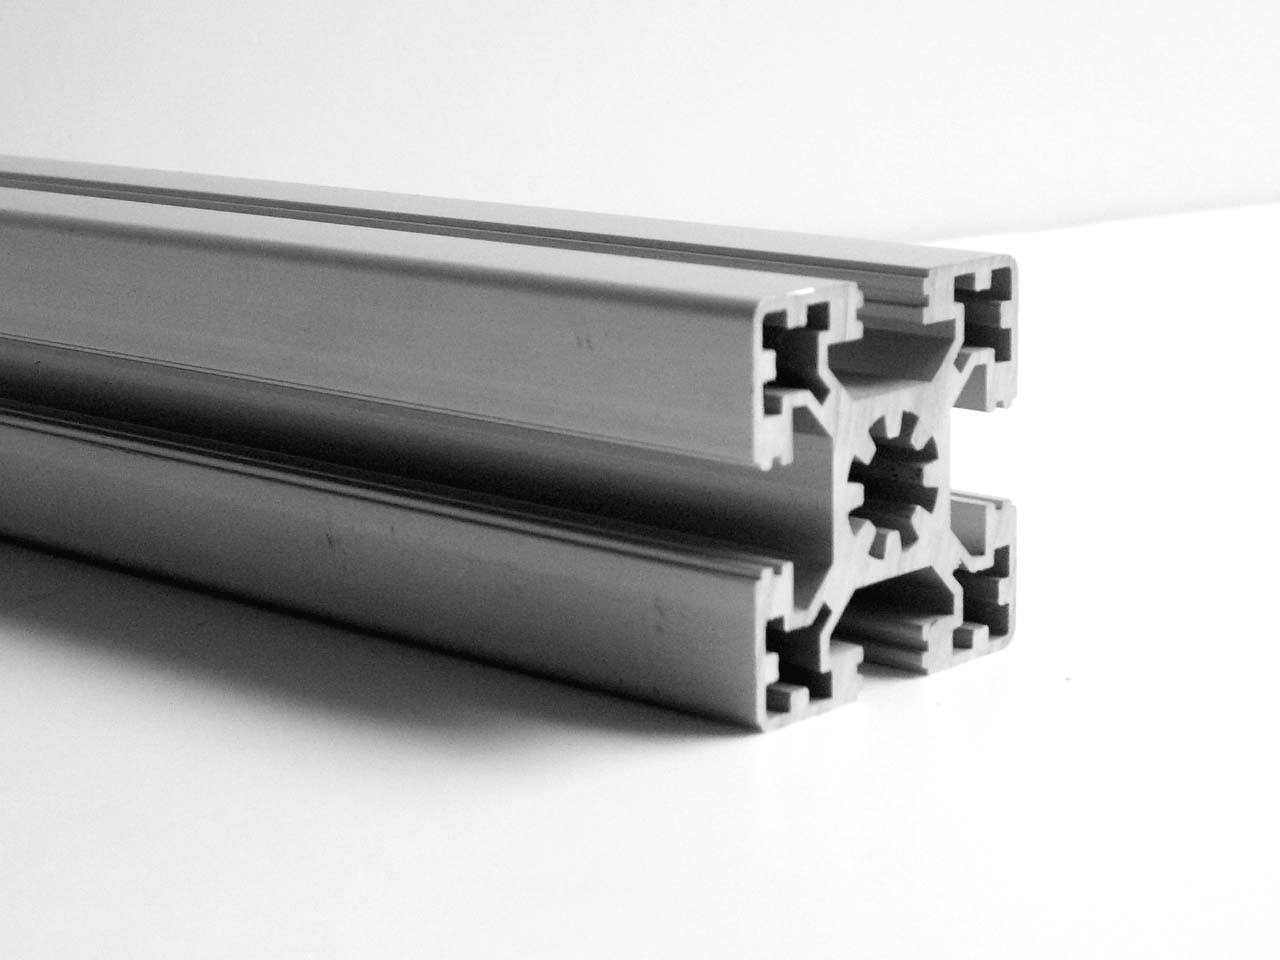 Clear anodized aluminum extrusion profiles